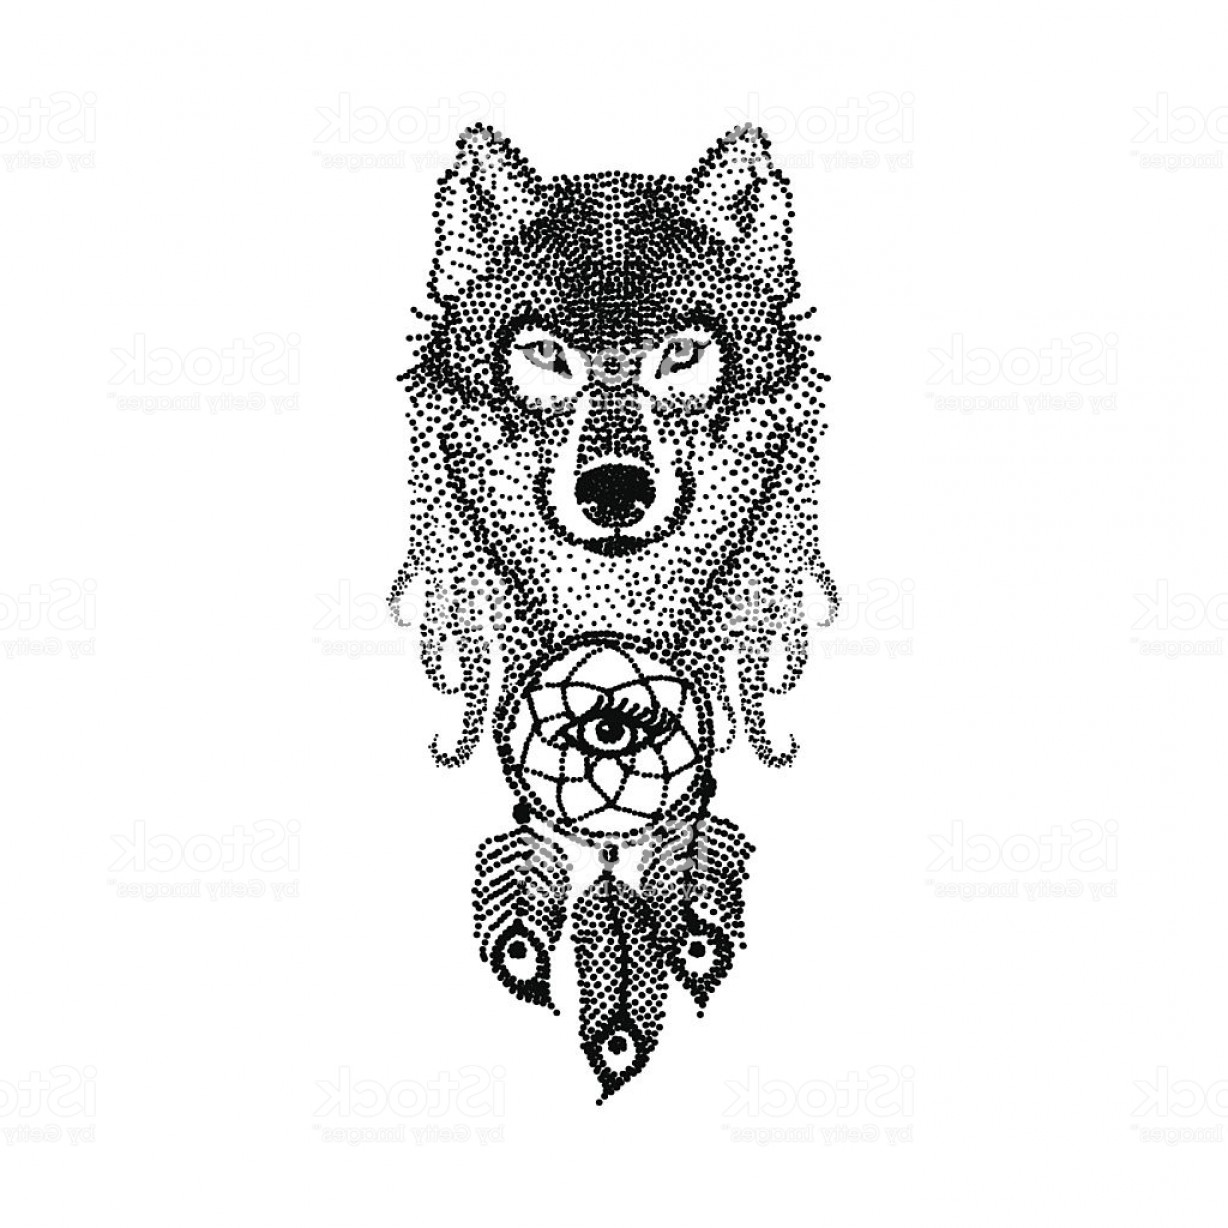 Dreamcatcher Tattoo Vector: Dotwork Tattoo Design Stylized Wolf Face With Dream Catcher Han Gm